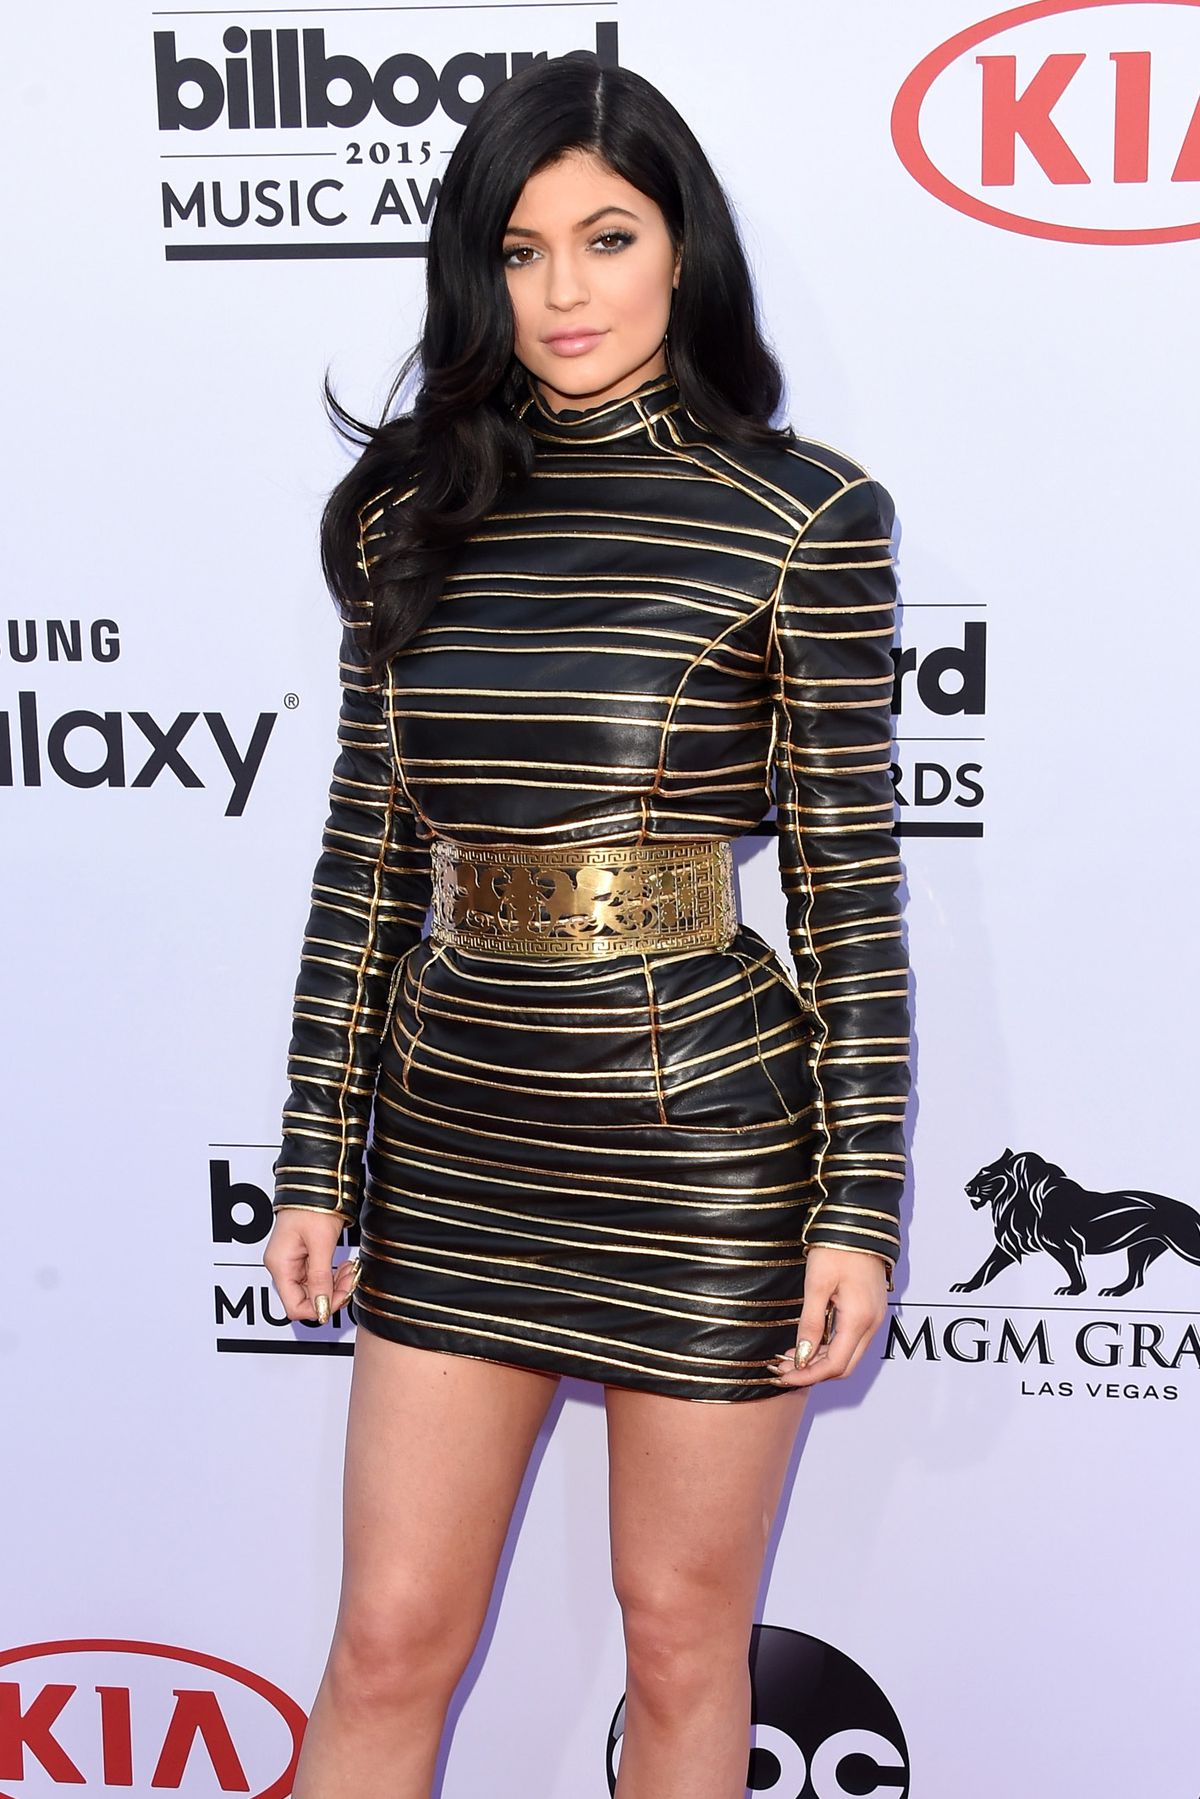 Model Kylie Jenner attends the 2015 Billboard Music Awards at MGM Grand Garden Arena on May 17, 2015 in Las Vegas, Nevada.